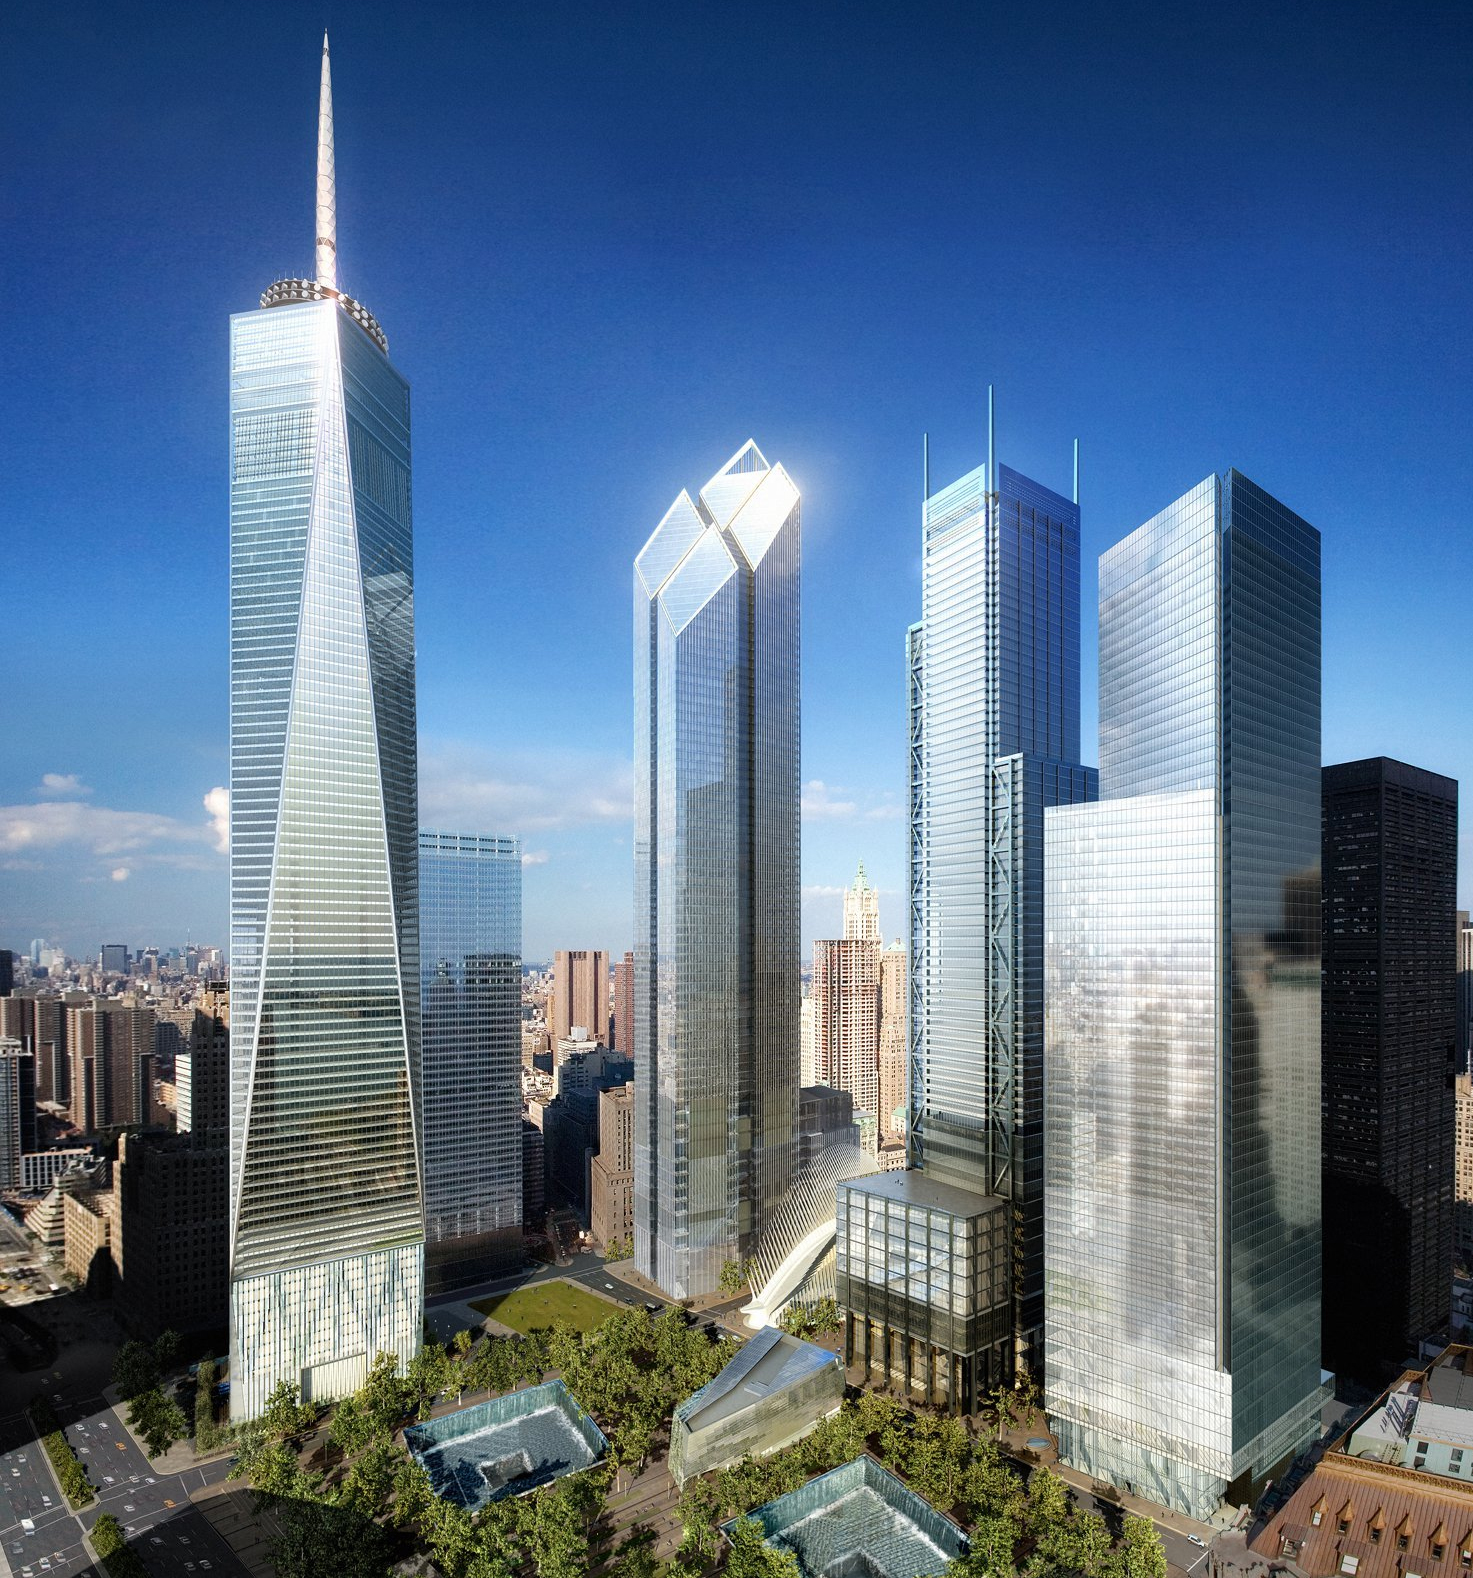 The World Trade Center redevelopment plan, viewed from the southwest, in 2006 with towers by Childs, Foster, Rogers and Maki from left to right